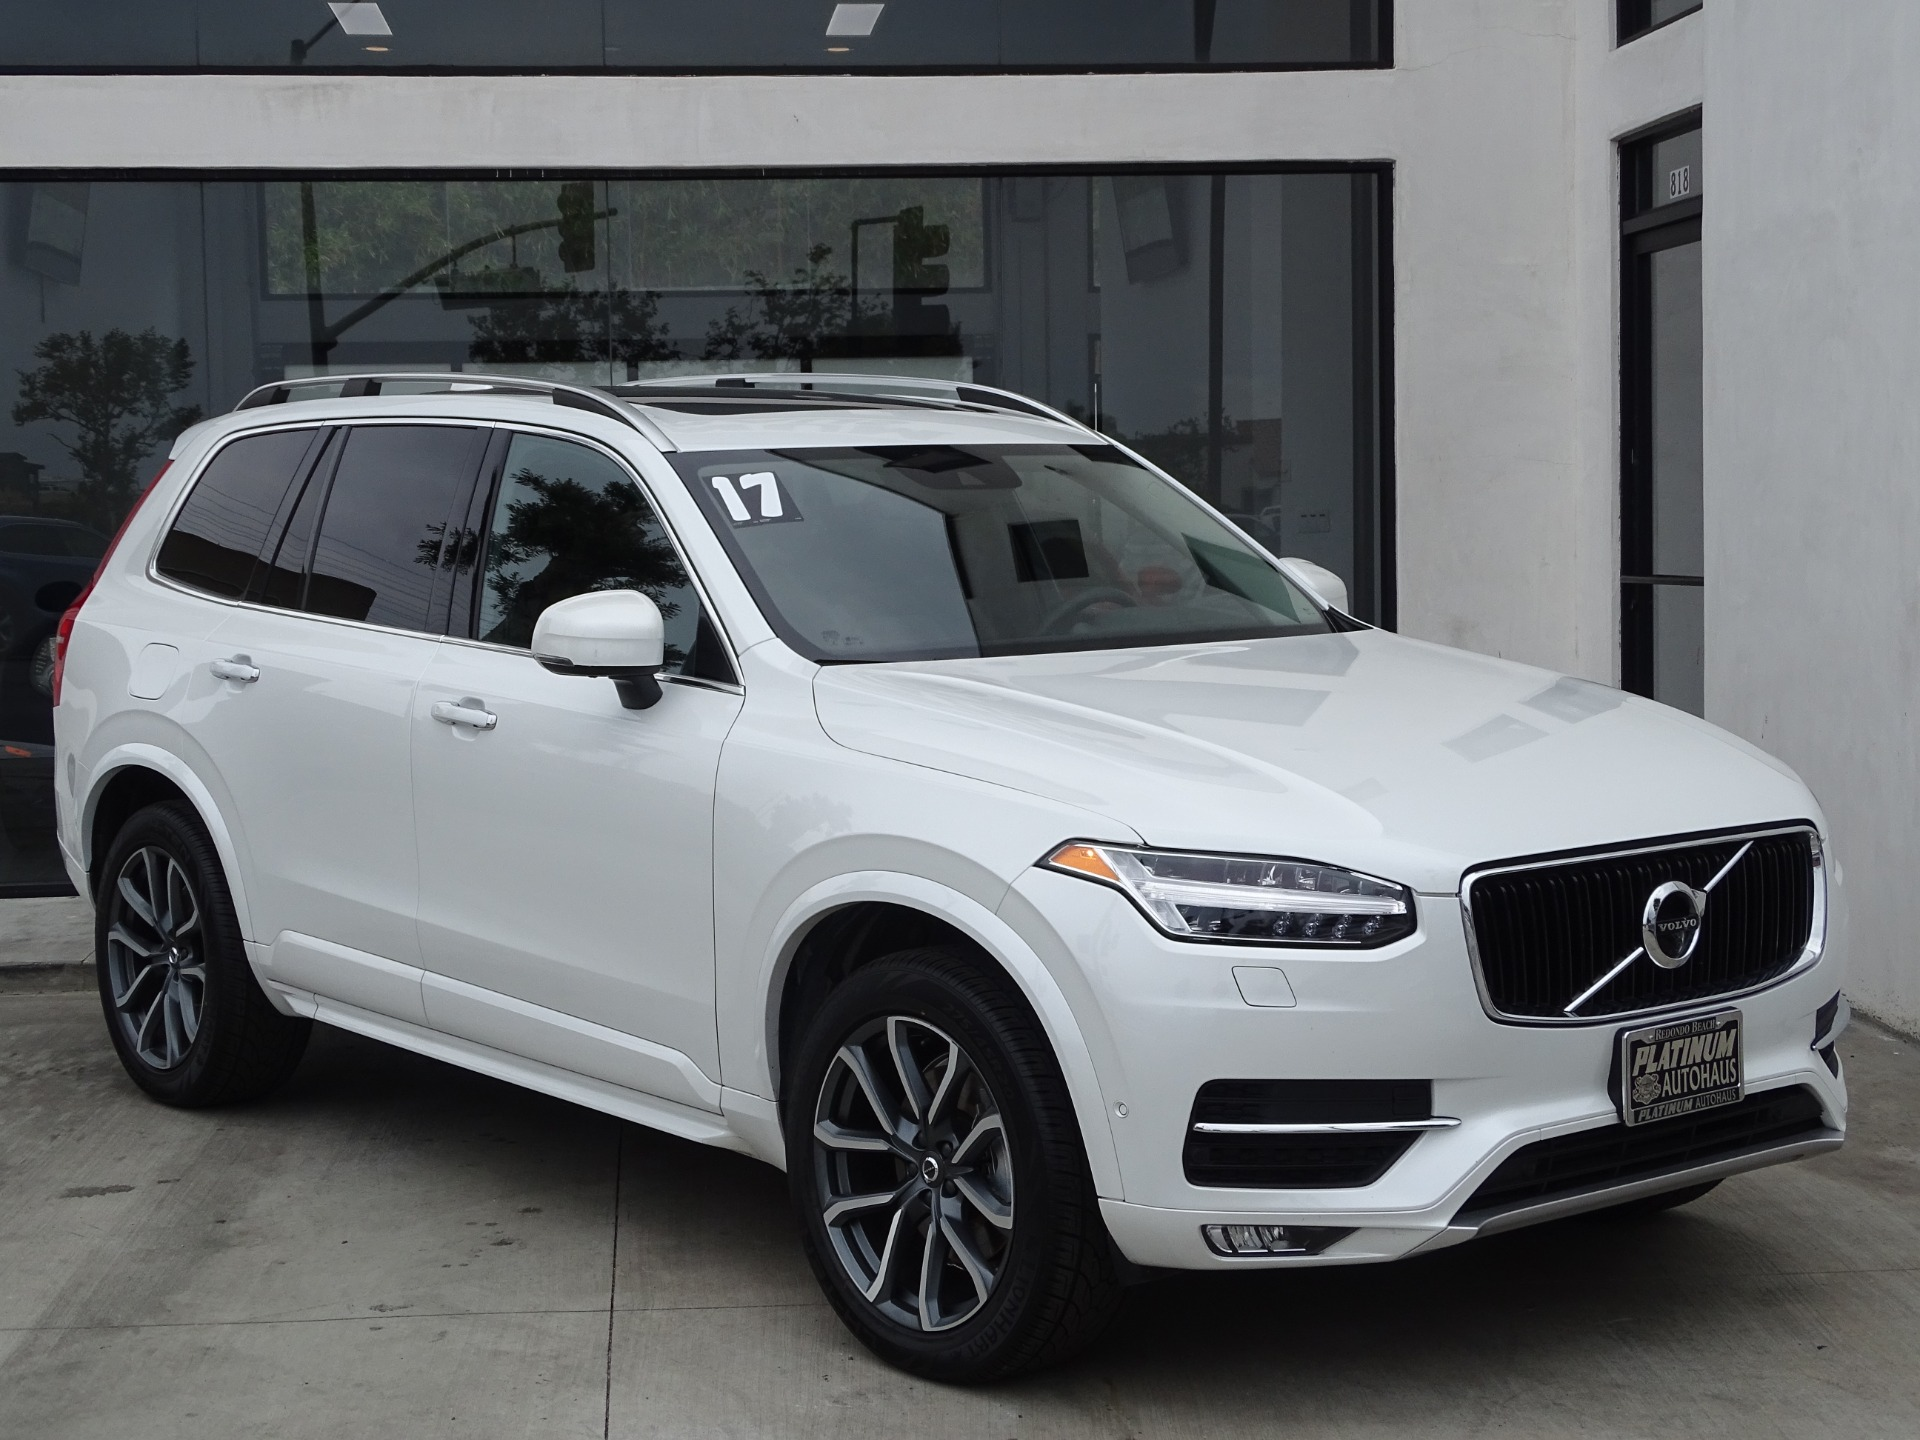 Used Suv For Sale Near Me >> 2017 Volvo XC90 T6 Momentum Stock # 6564 for sale near ...